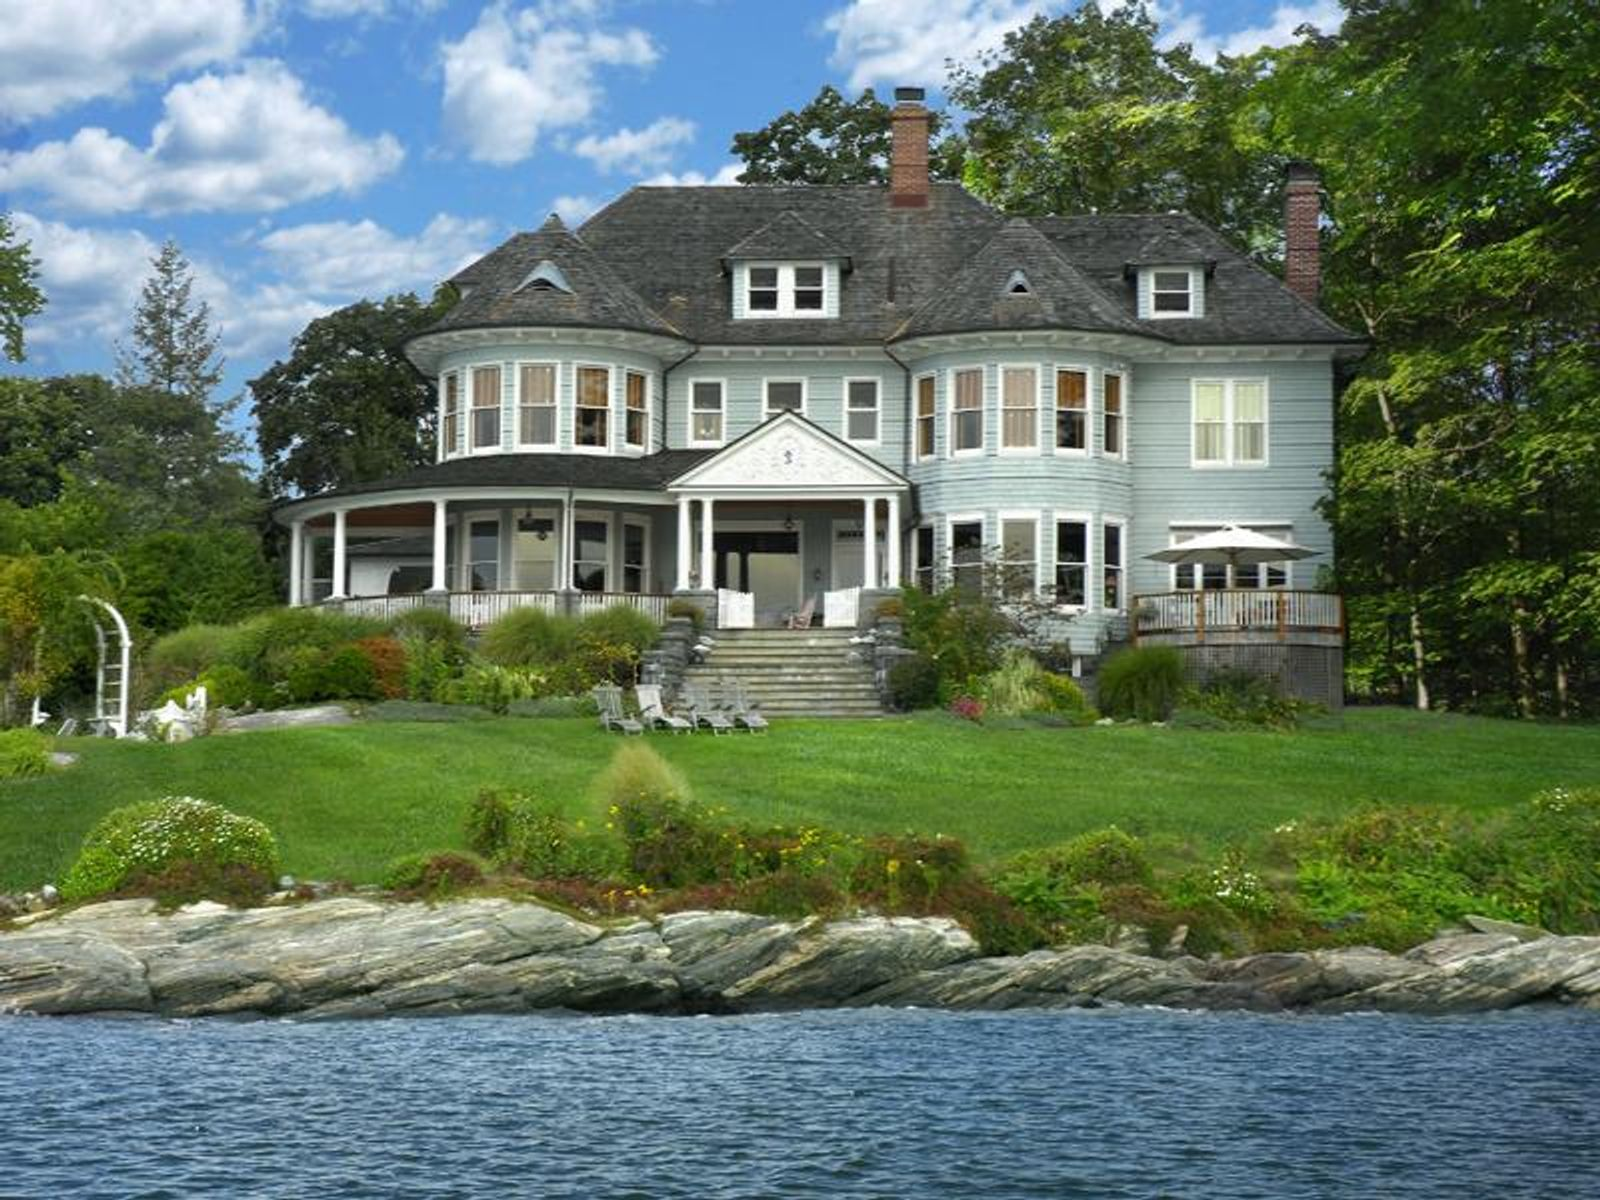 Seaside Estate, Greenwich CT Single Family Home - Greenwich Real Estate